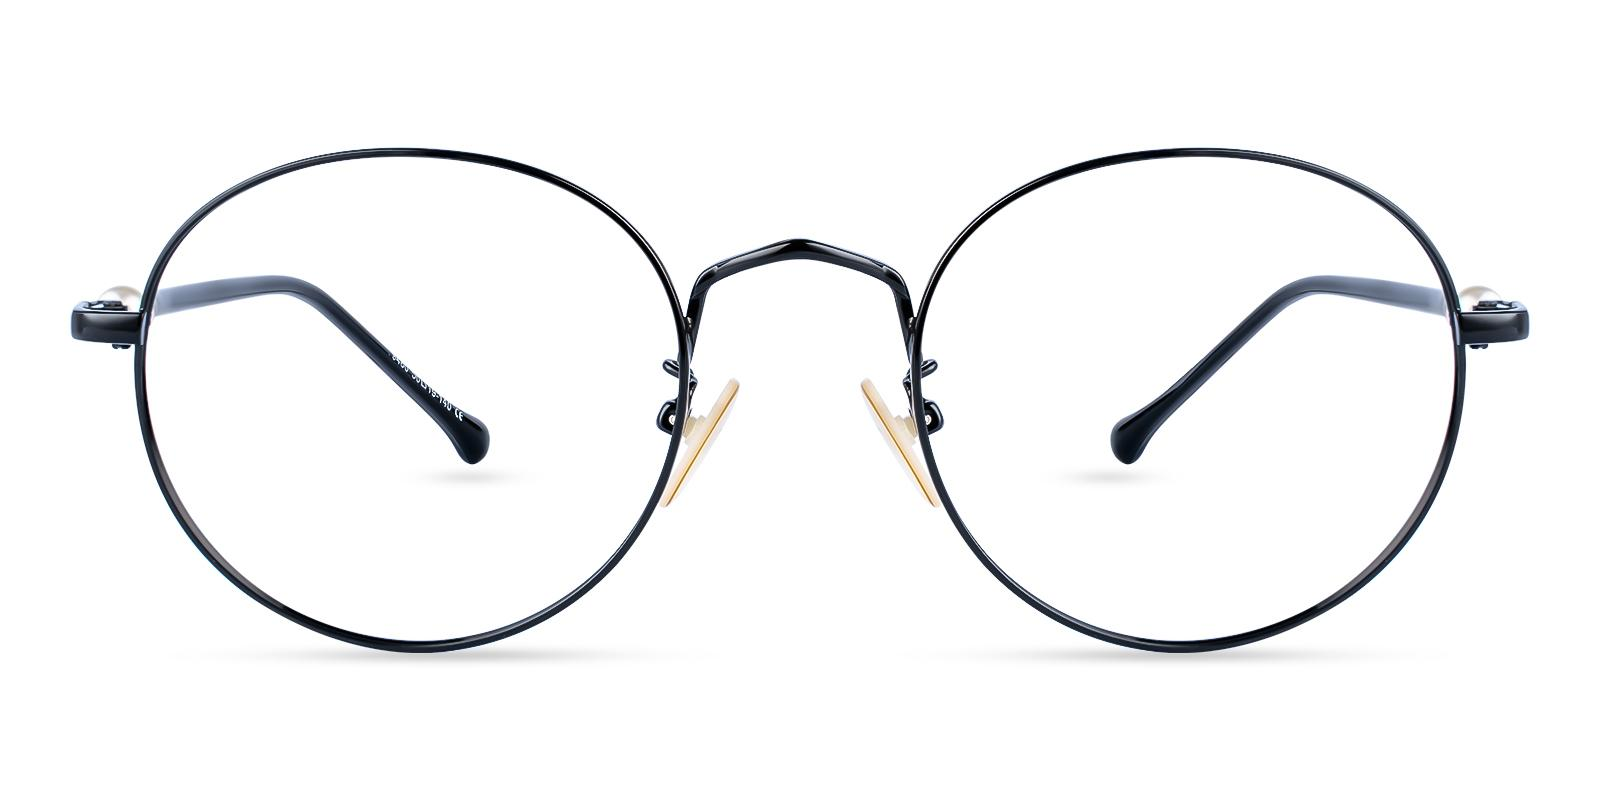 Durns Black Metal Eyeglasses , NosePads Frames from ABBE Glasses